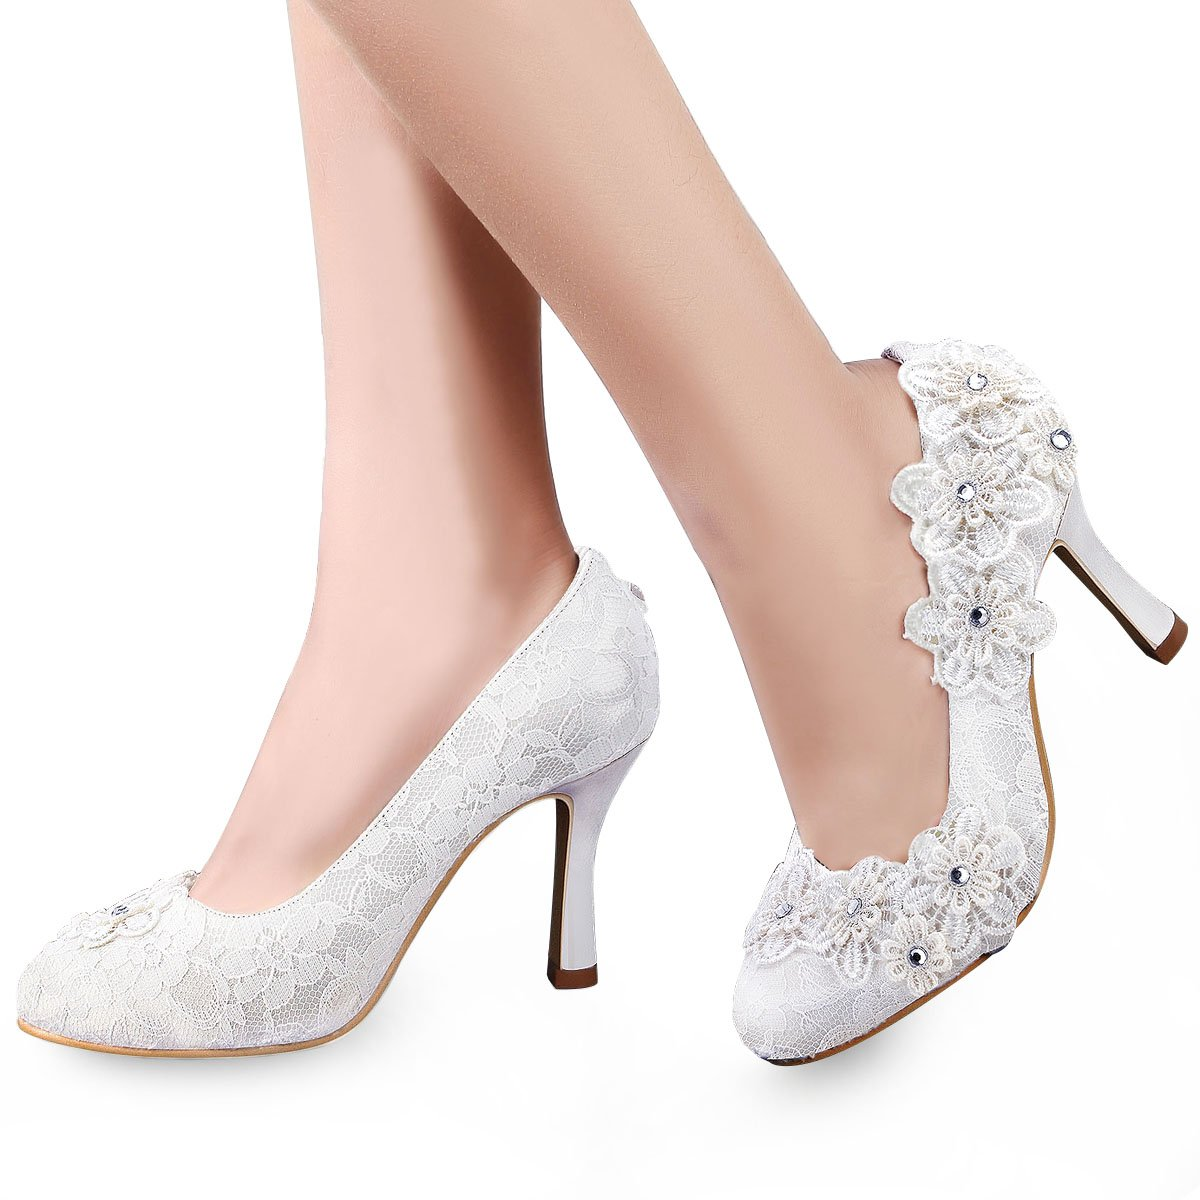 ElegantPark EP11099 Women Vintage Closed Toe Pumps High Heel Flowers Lace Wedding Bridal Dress Shoes Ivory US 11